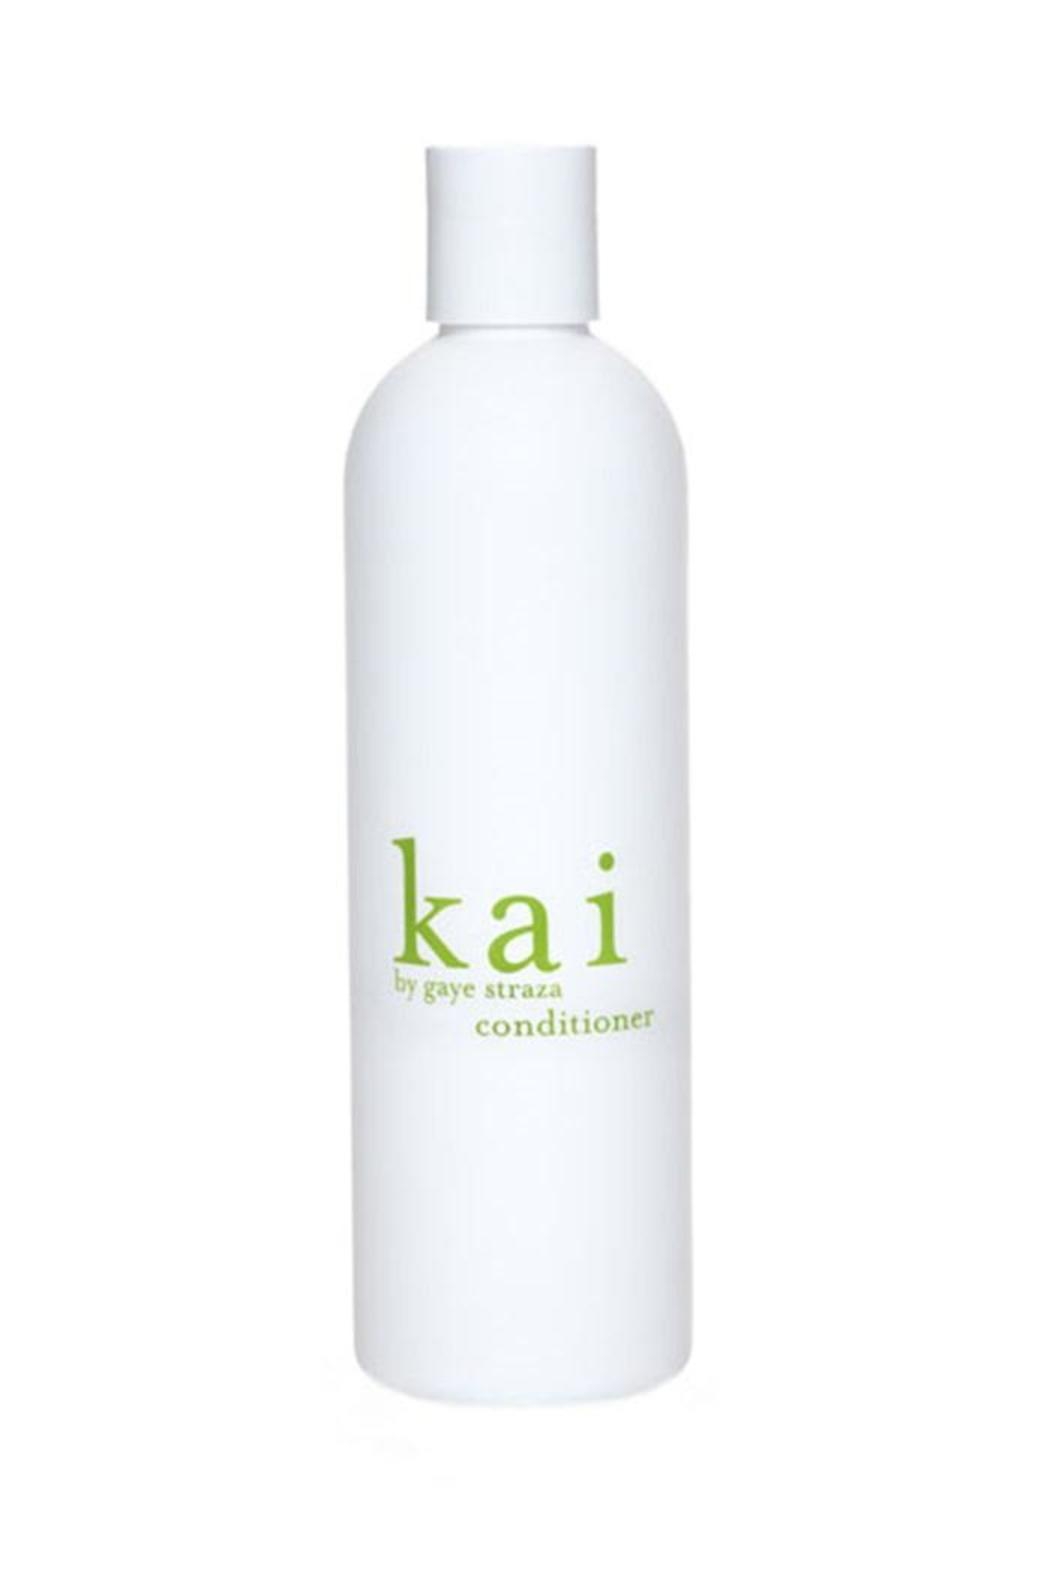 kai conditioner 10 oz.